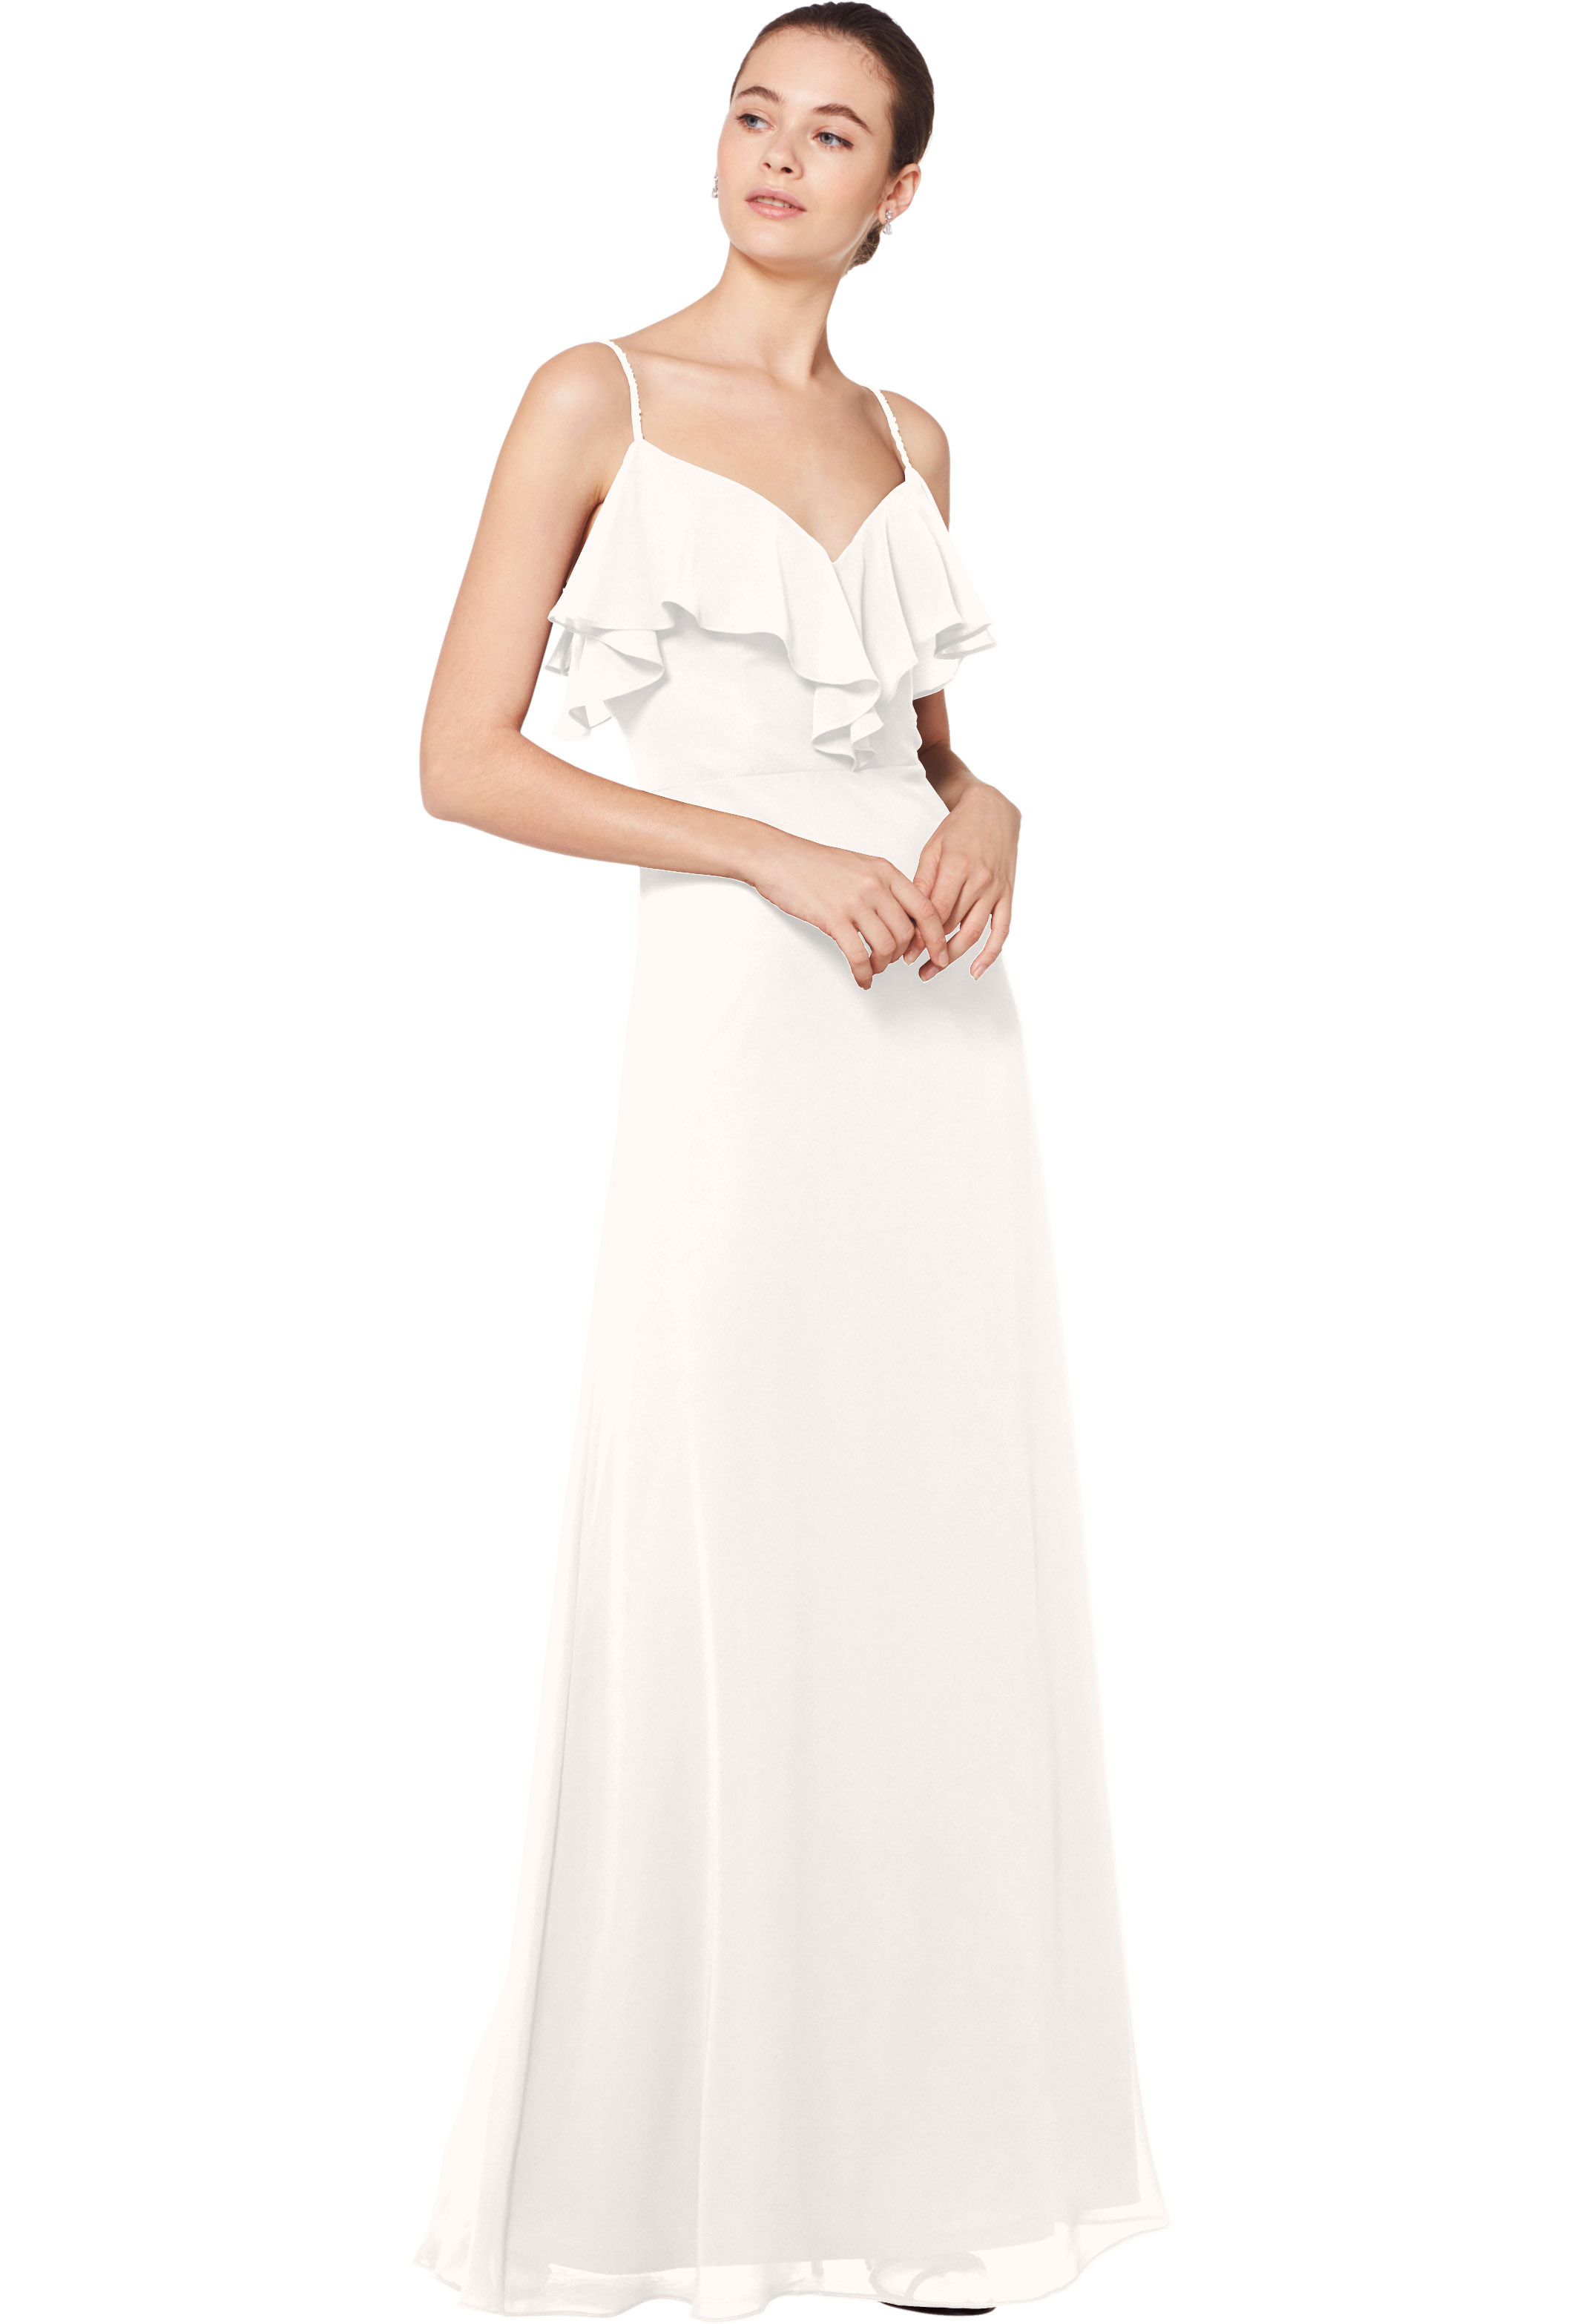 Bill Levkoff IVORY Chiffon Sweetheart A-line gown, $180.00 Front